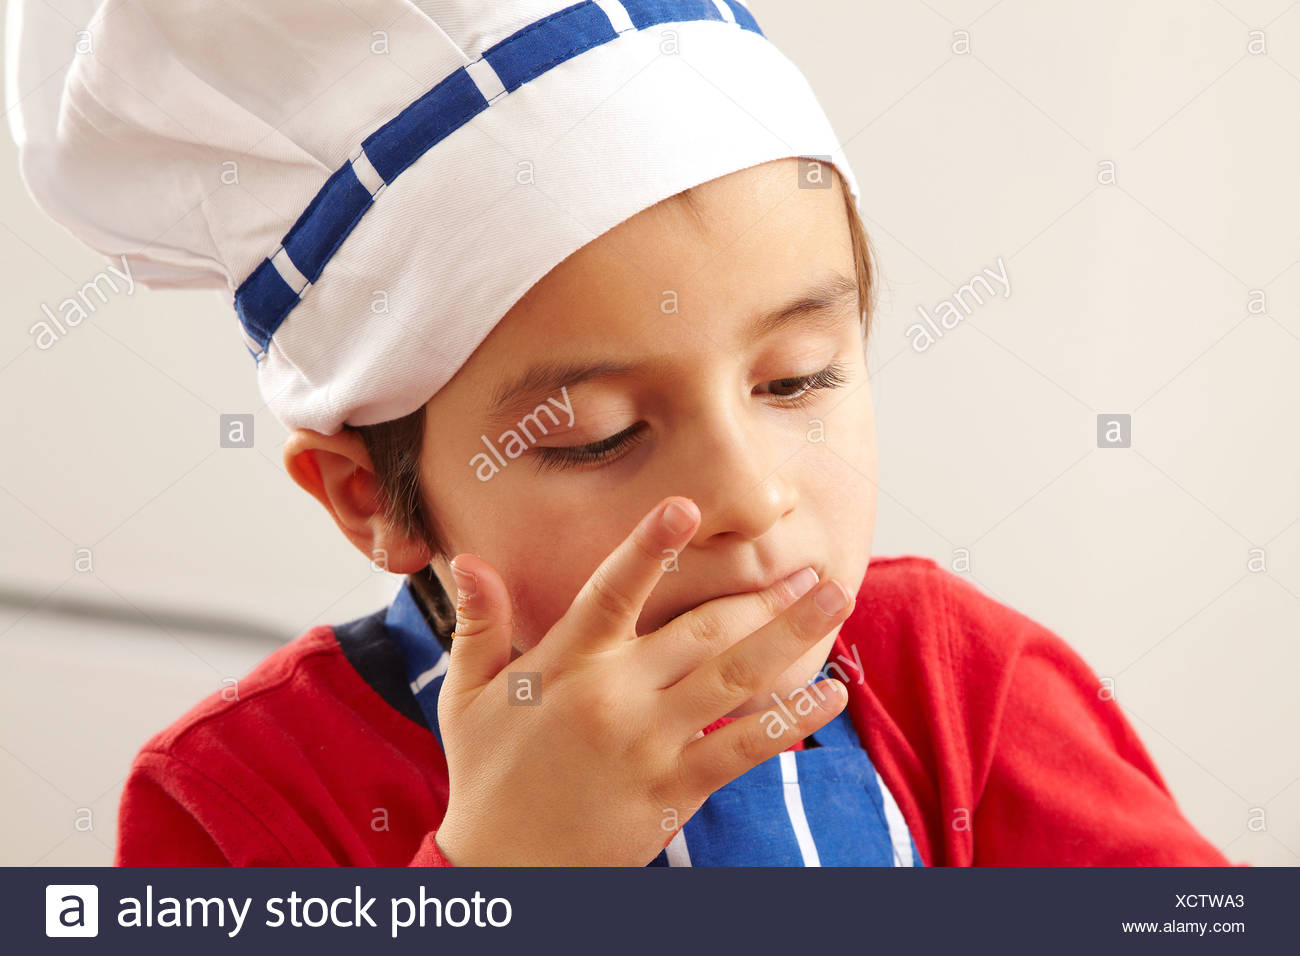 Close up of young boy licking fingers - Stock Image